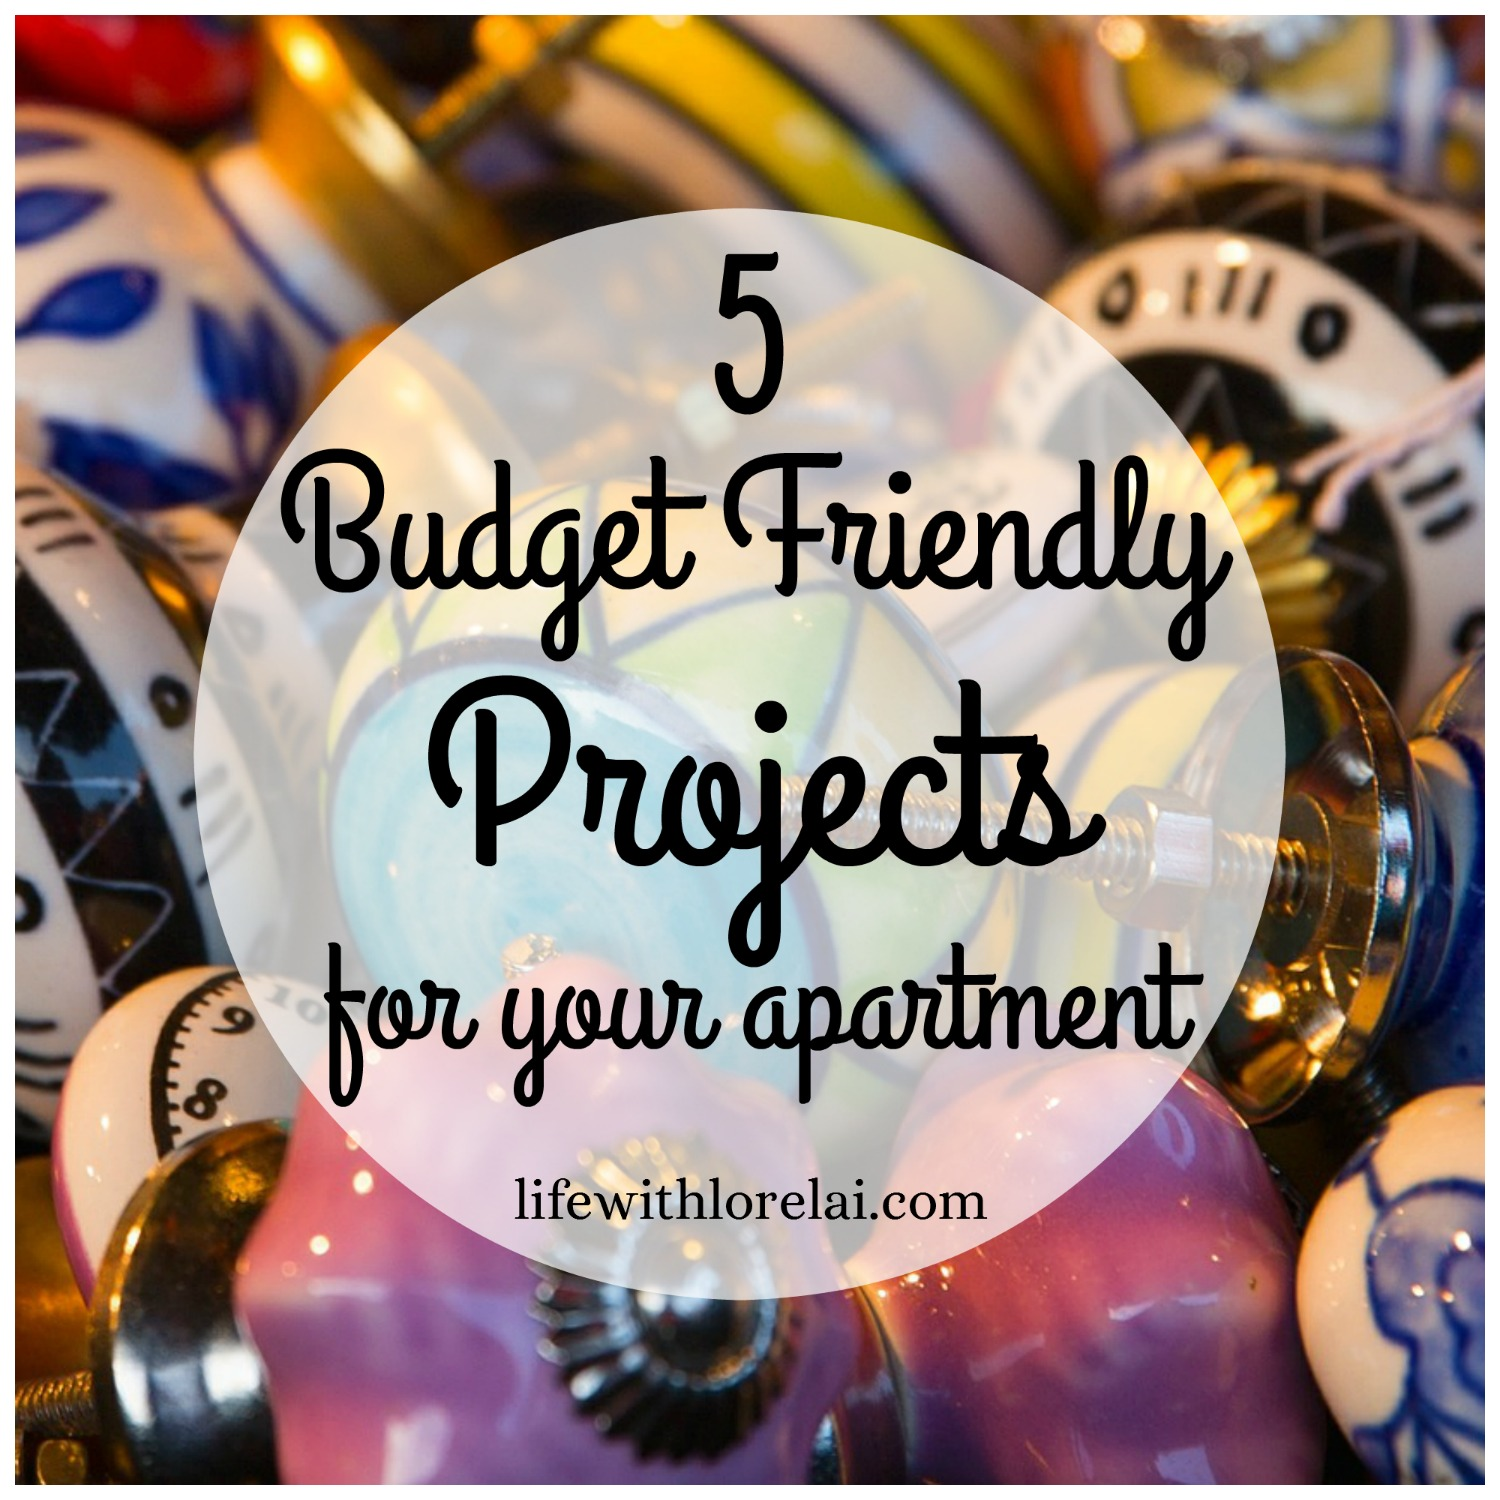 5-Budget-Friendly-Projects-Your-Apartment-Life With Lorelai